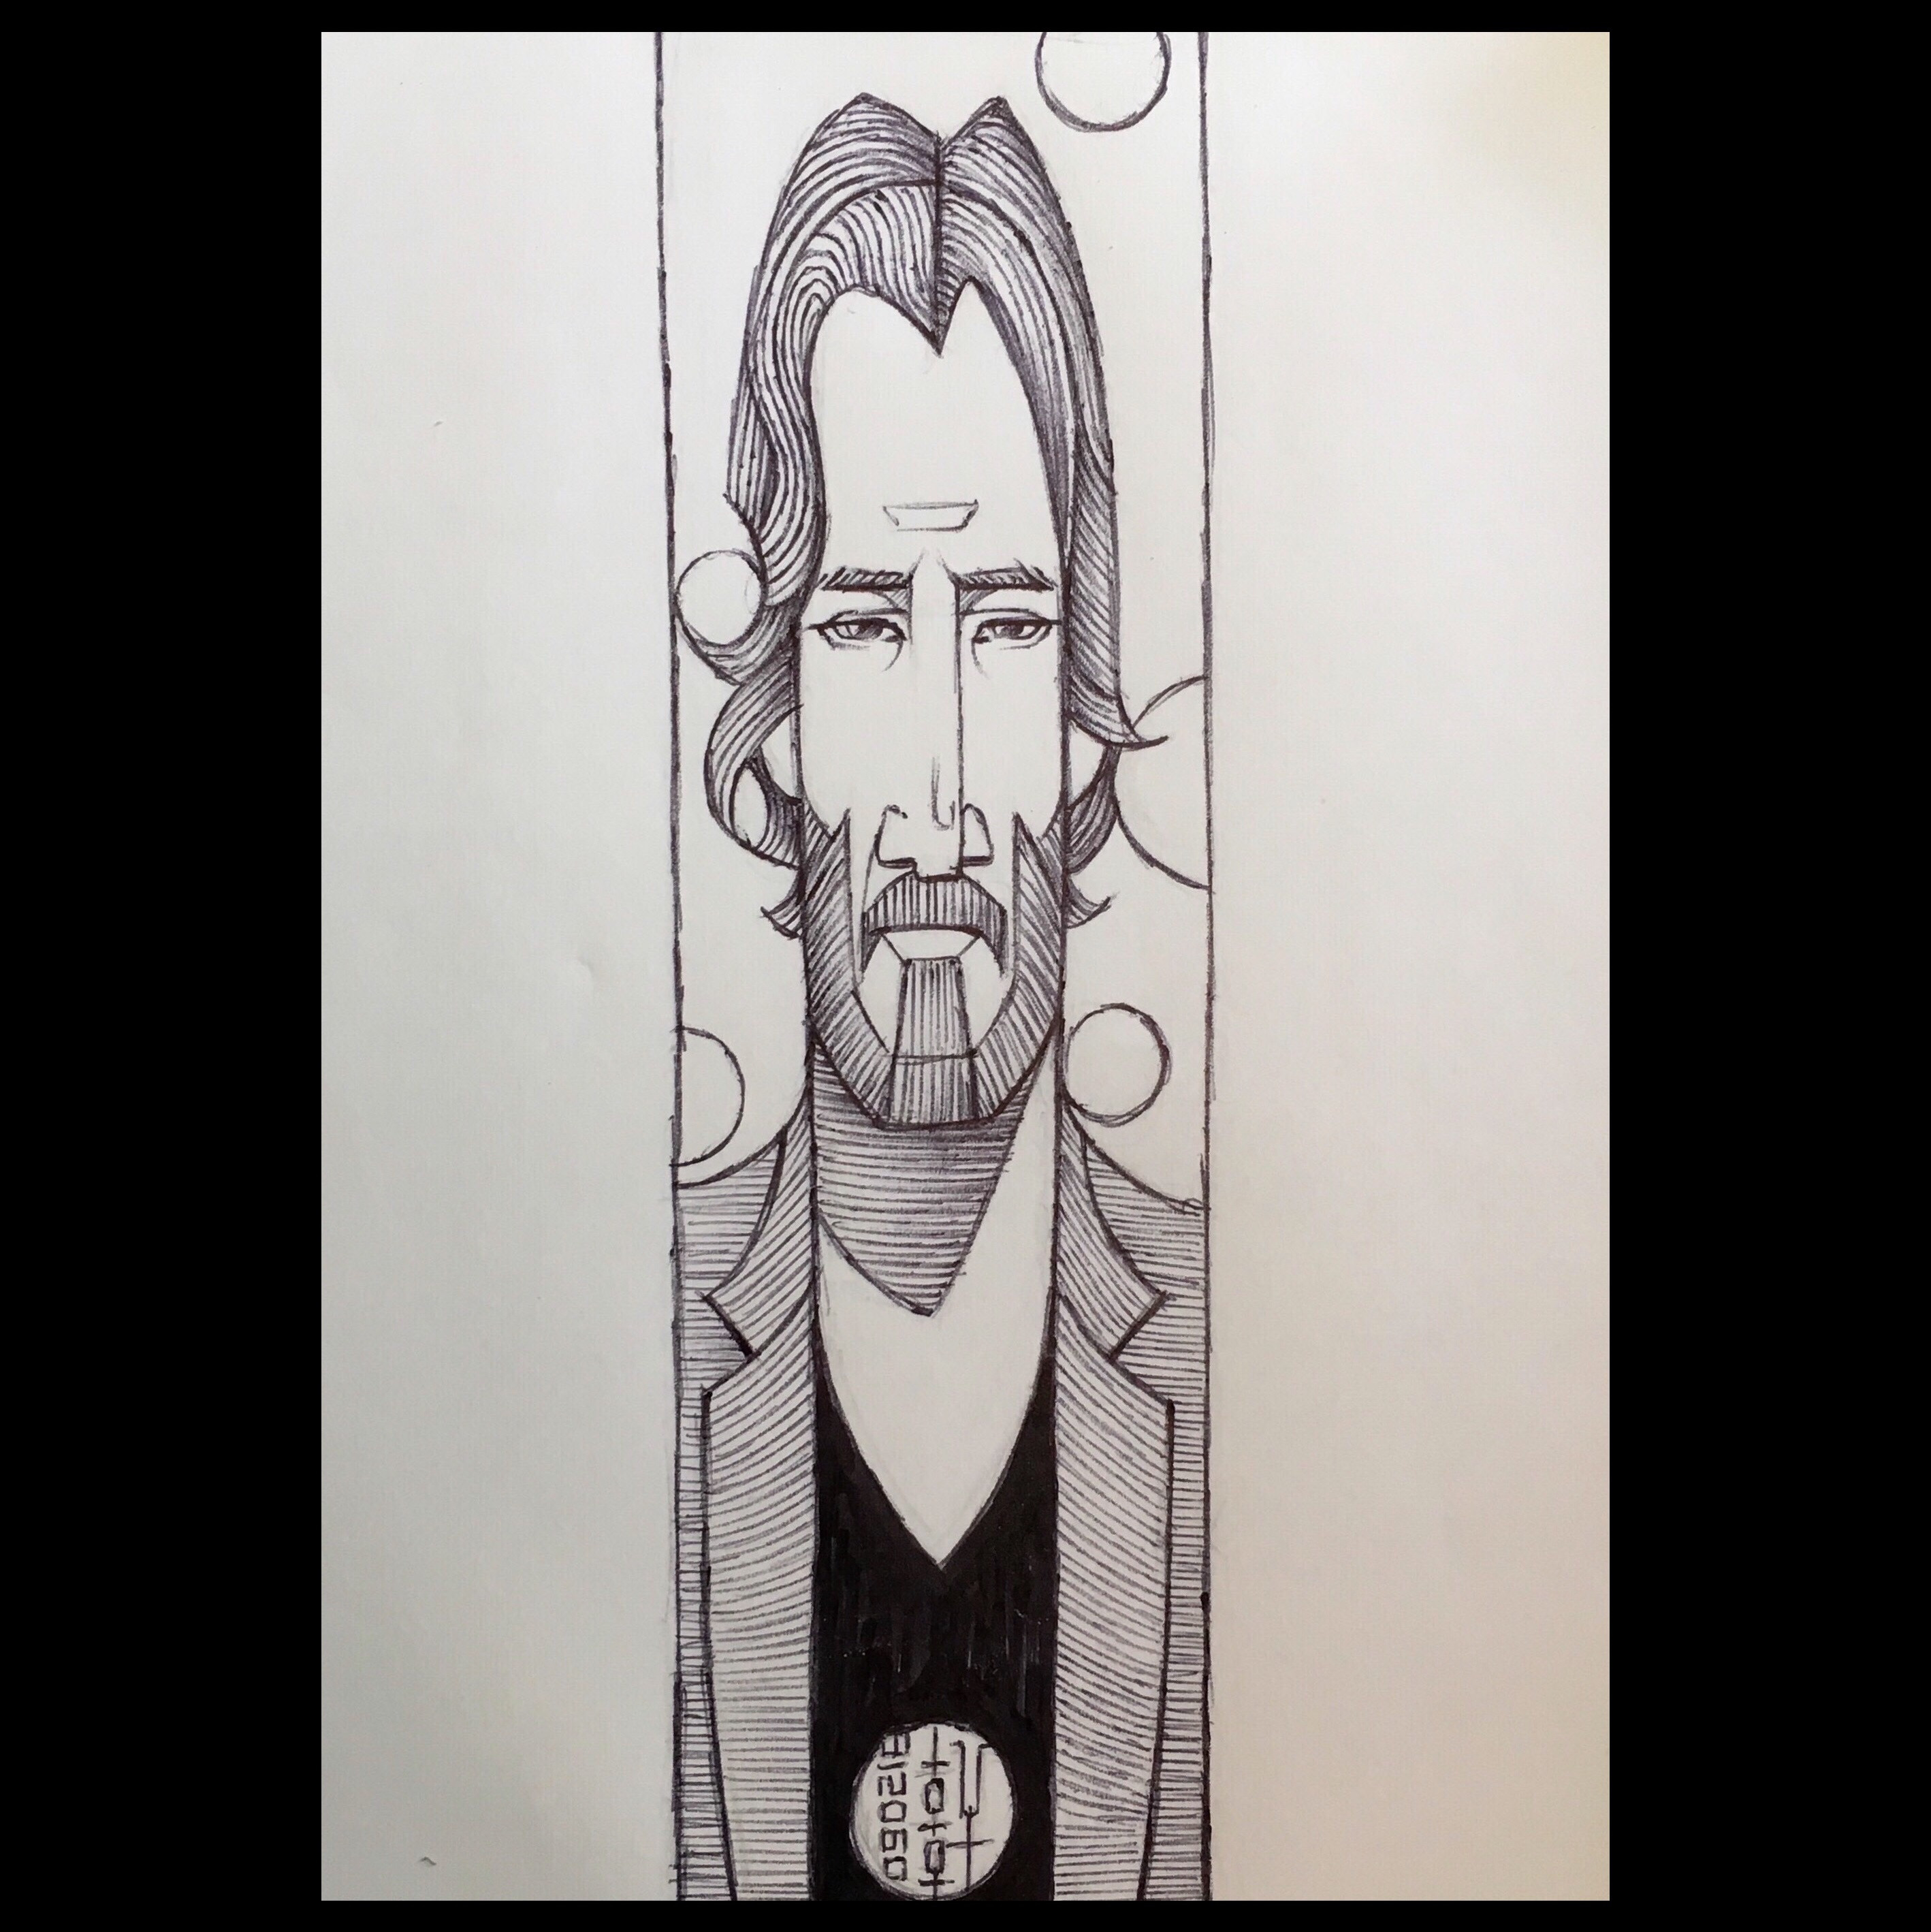 Day 09-02-18 - Keanu Reeves